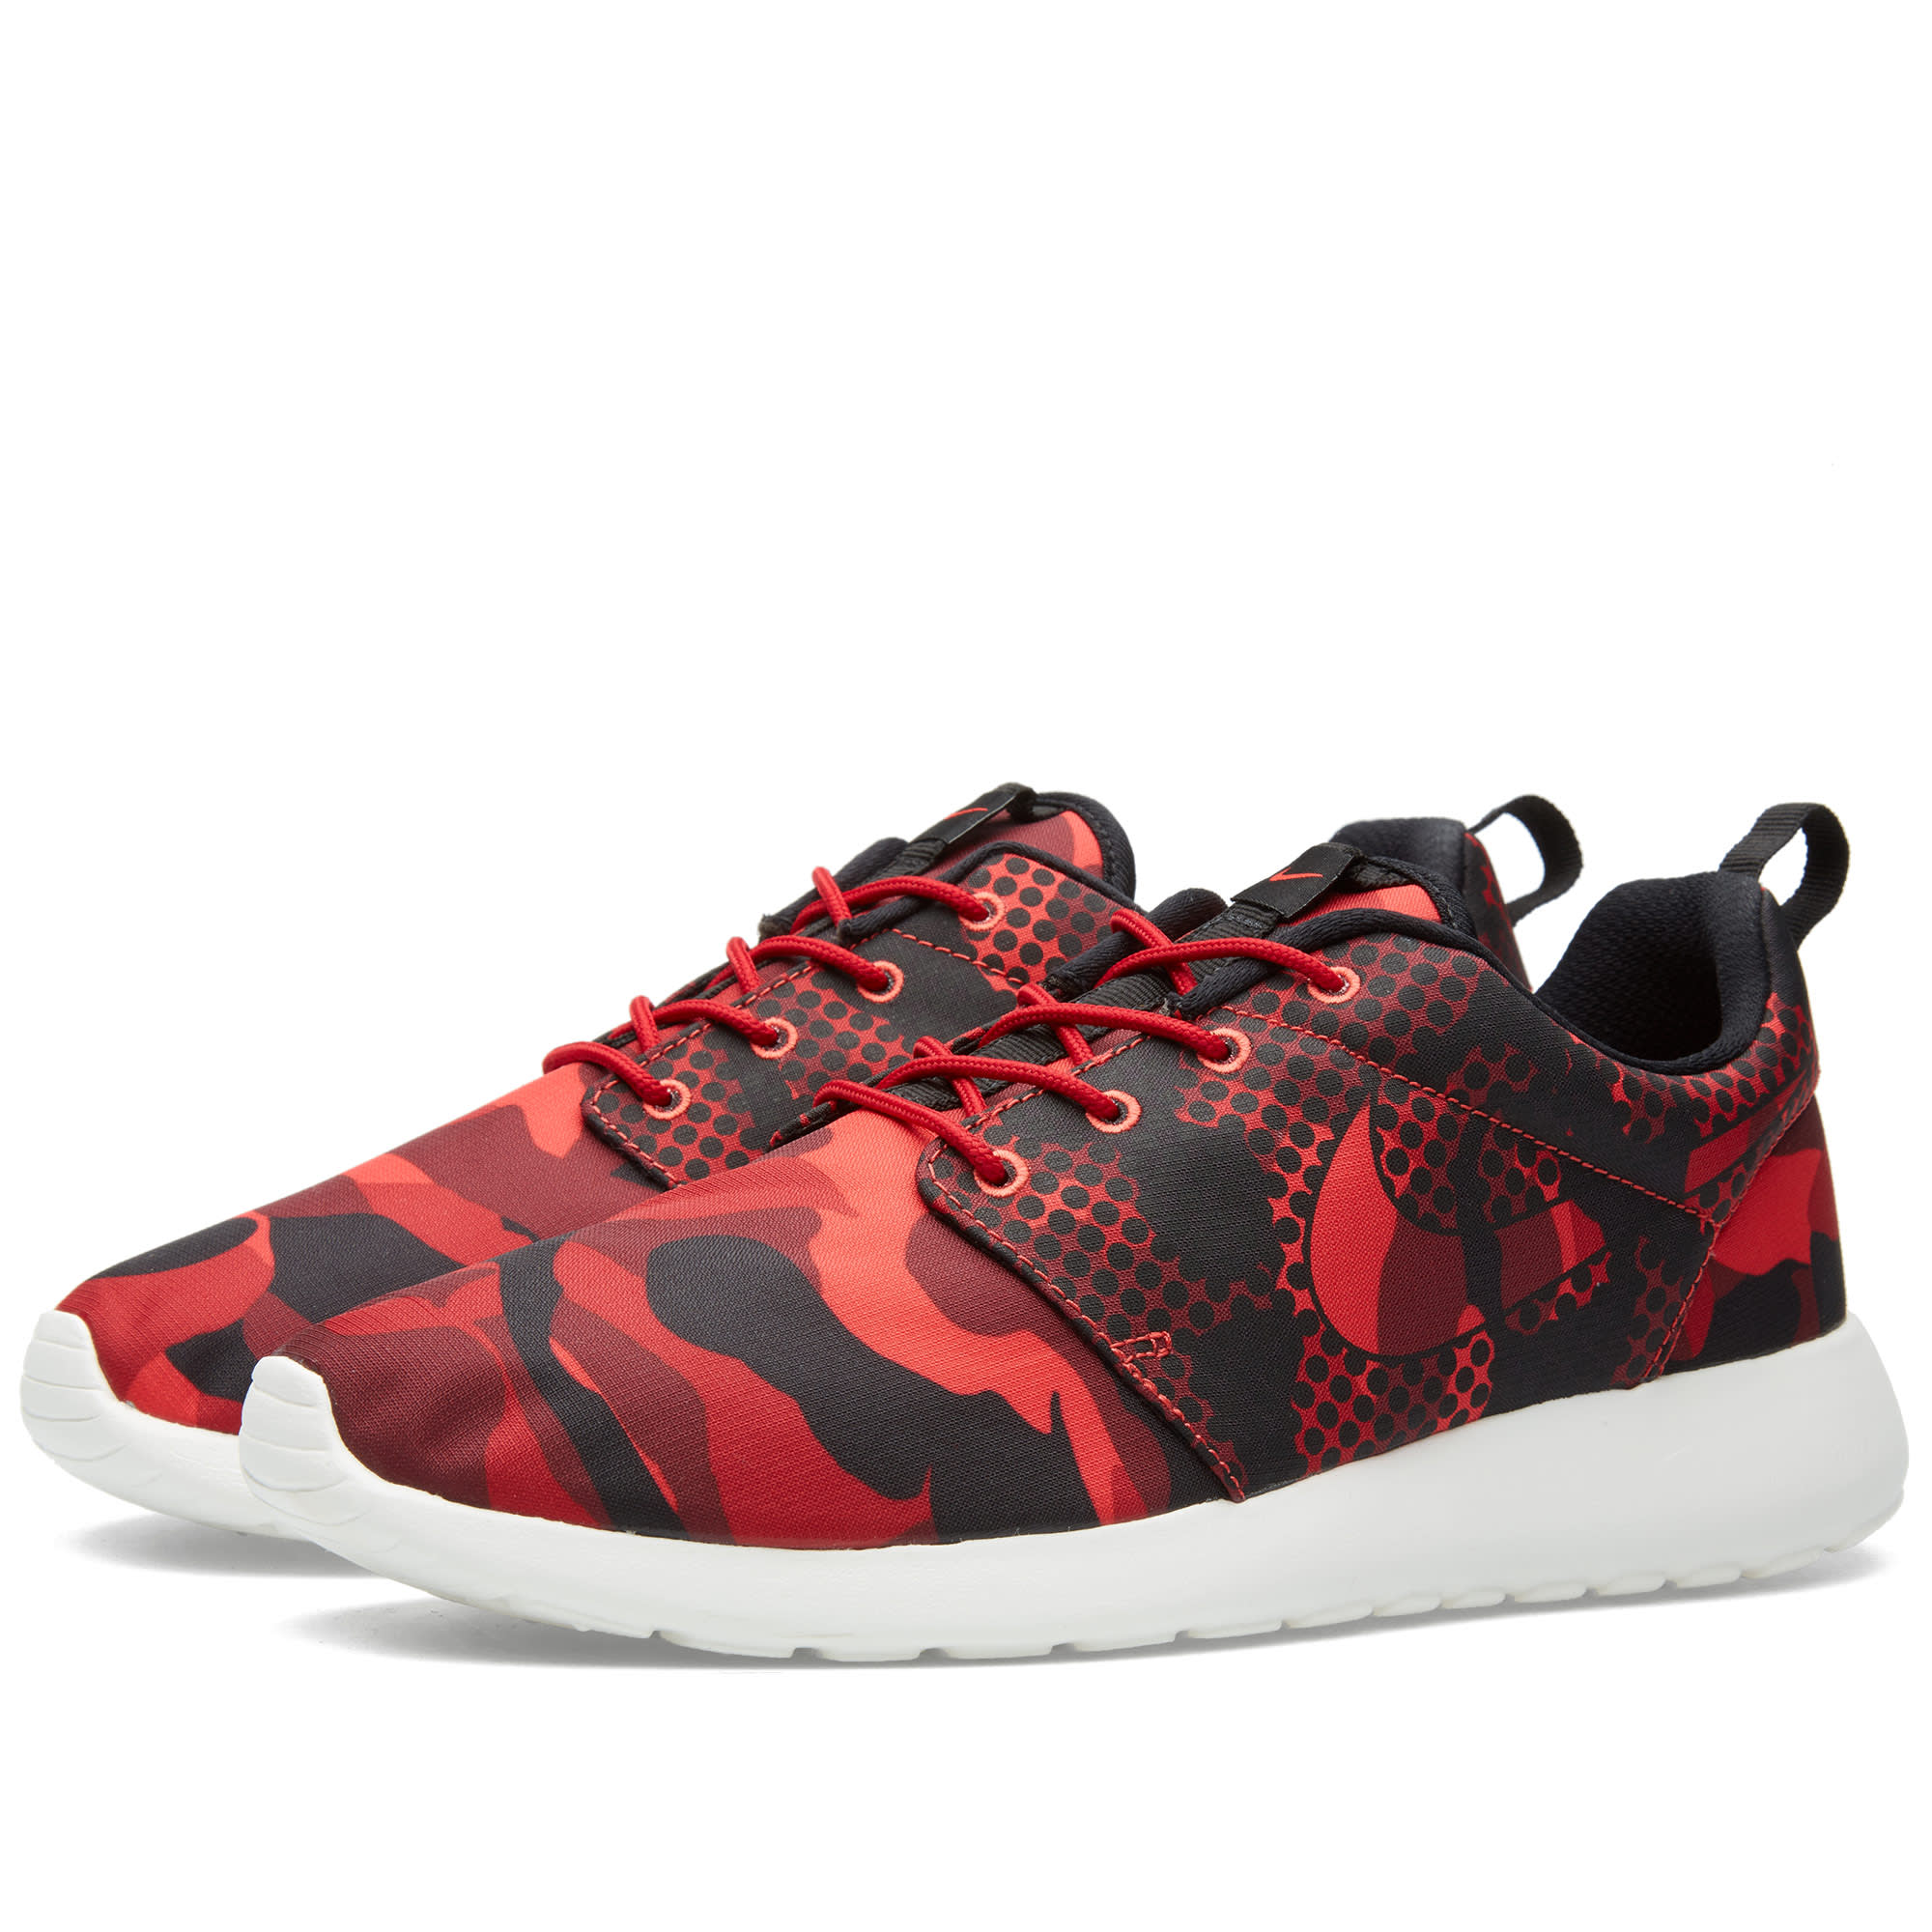 official photos 96e8a 6bb60 Nike Roshe One Print Daring Red   Black   END.